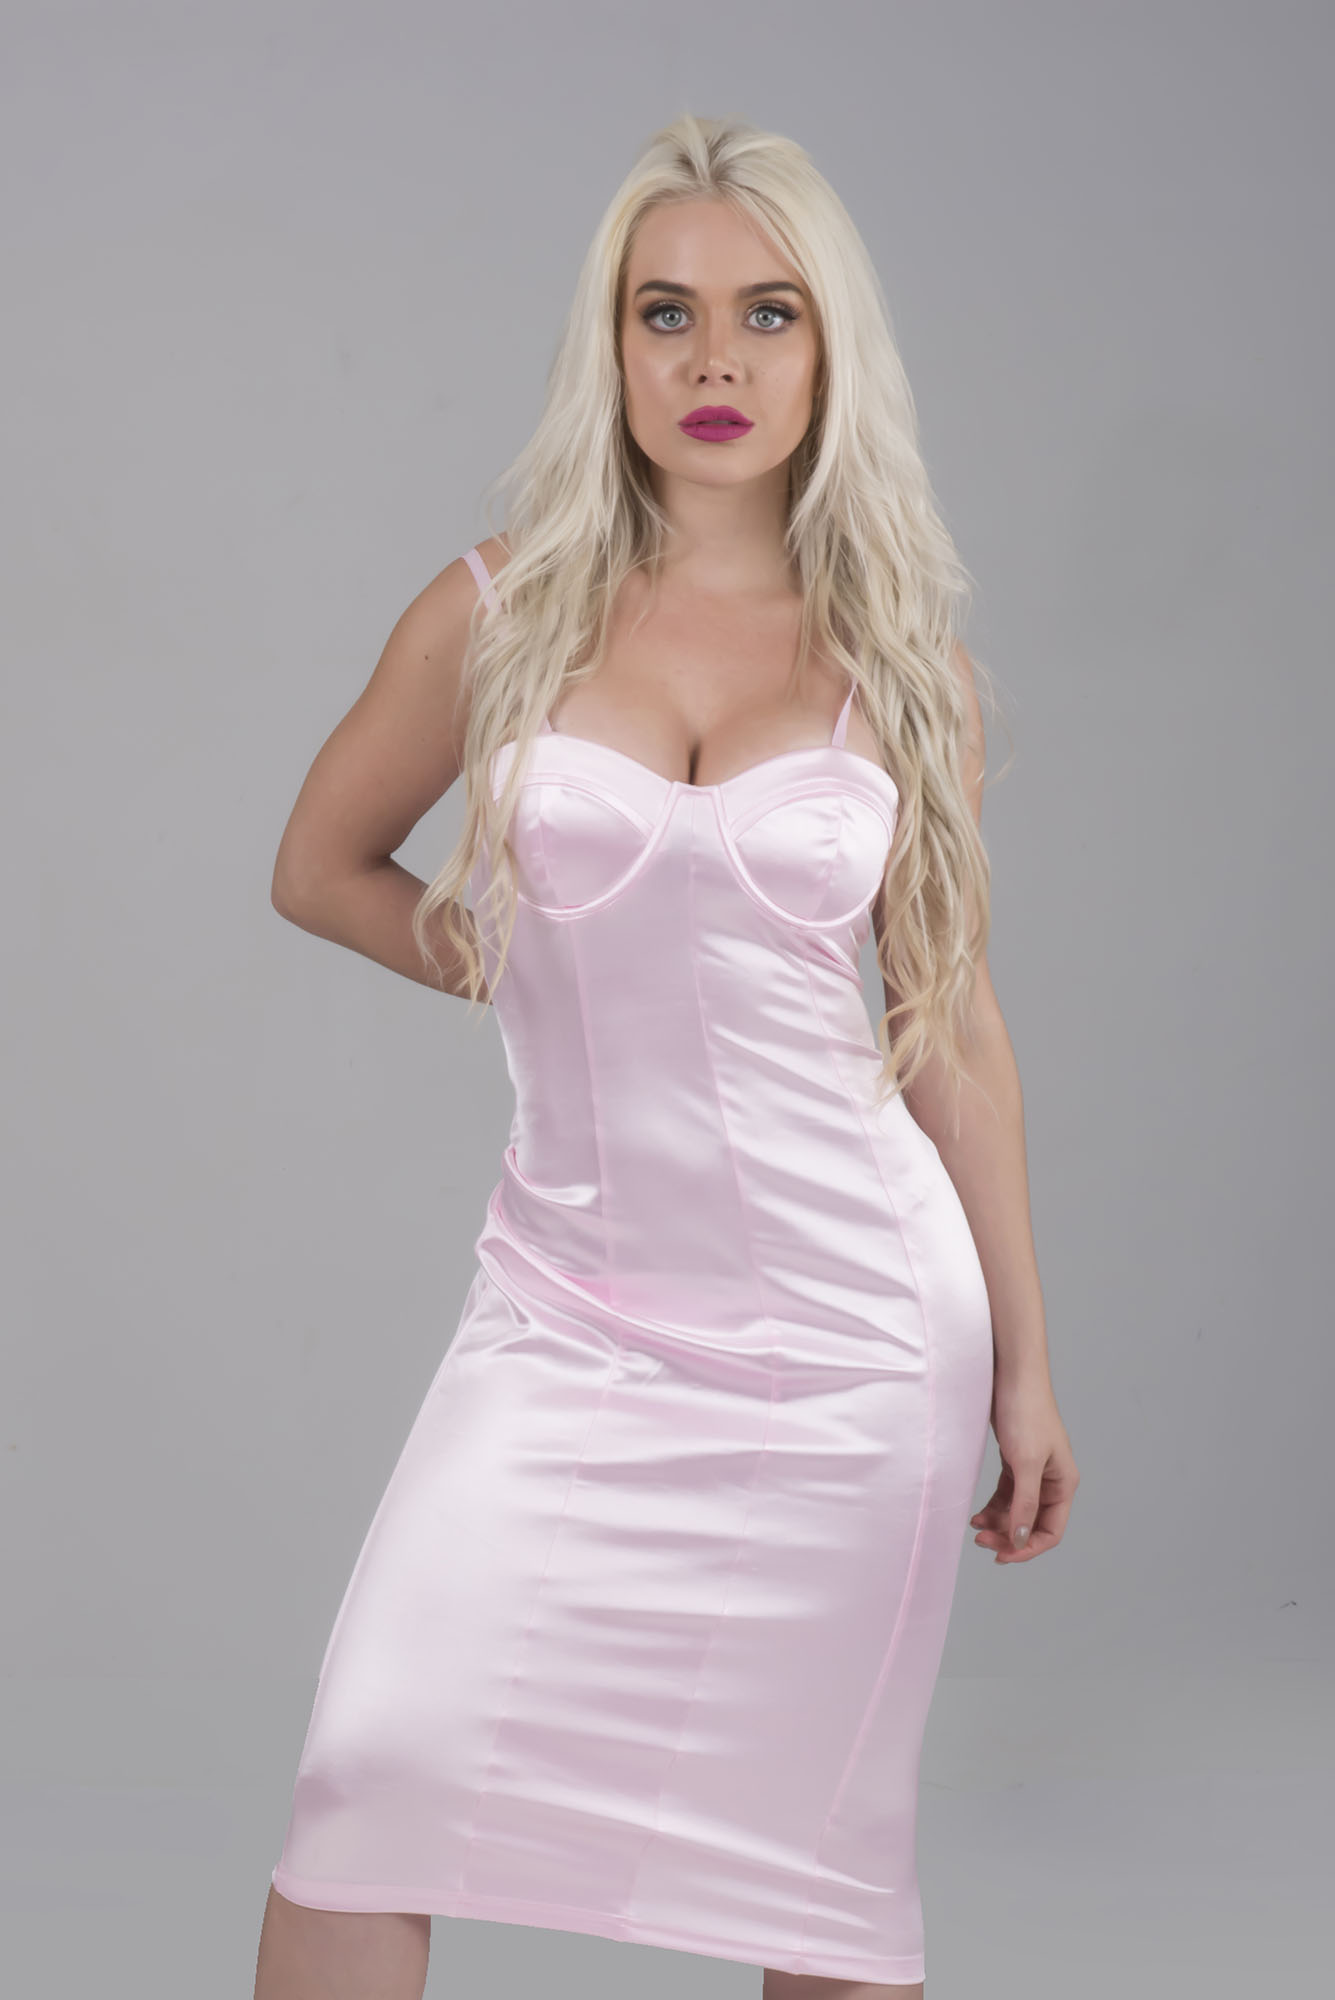 fee26ad48c Metallic Satin Dress